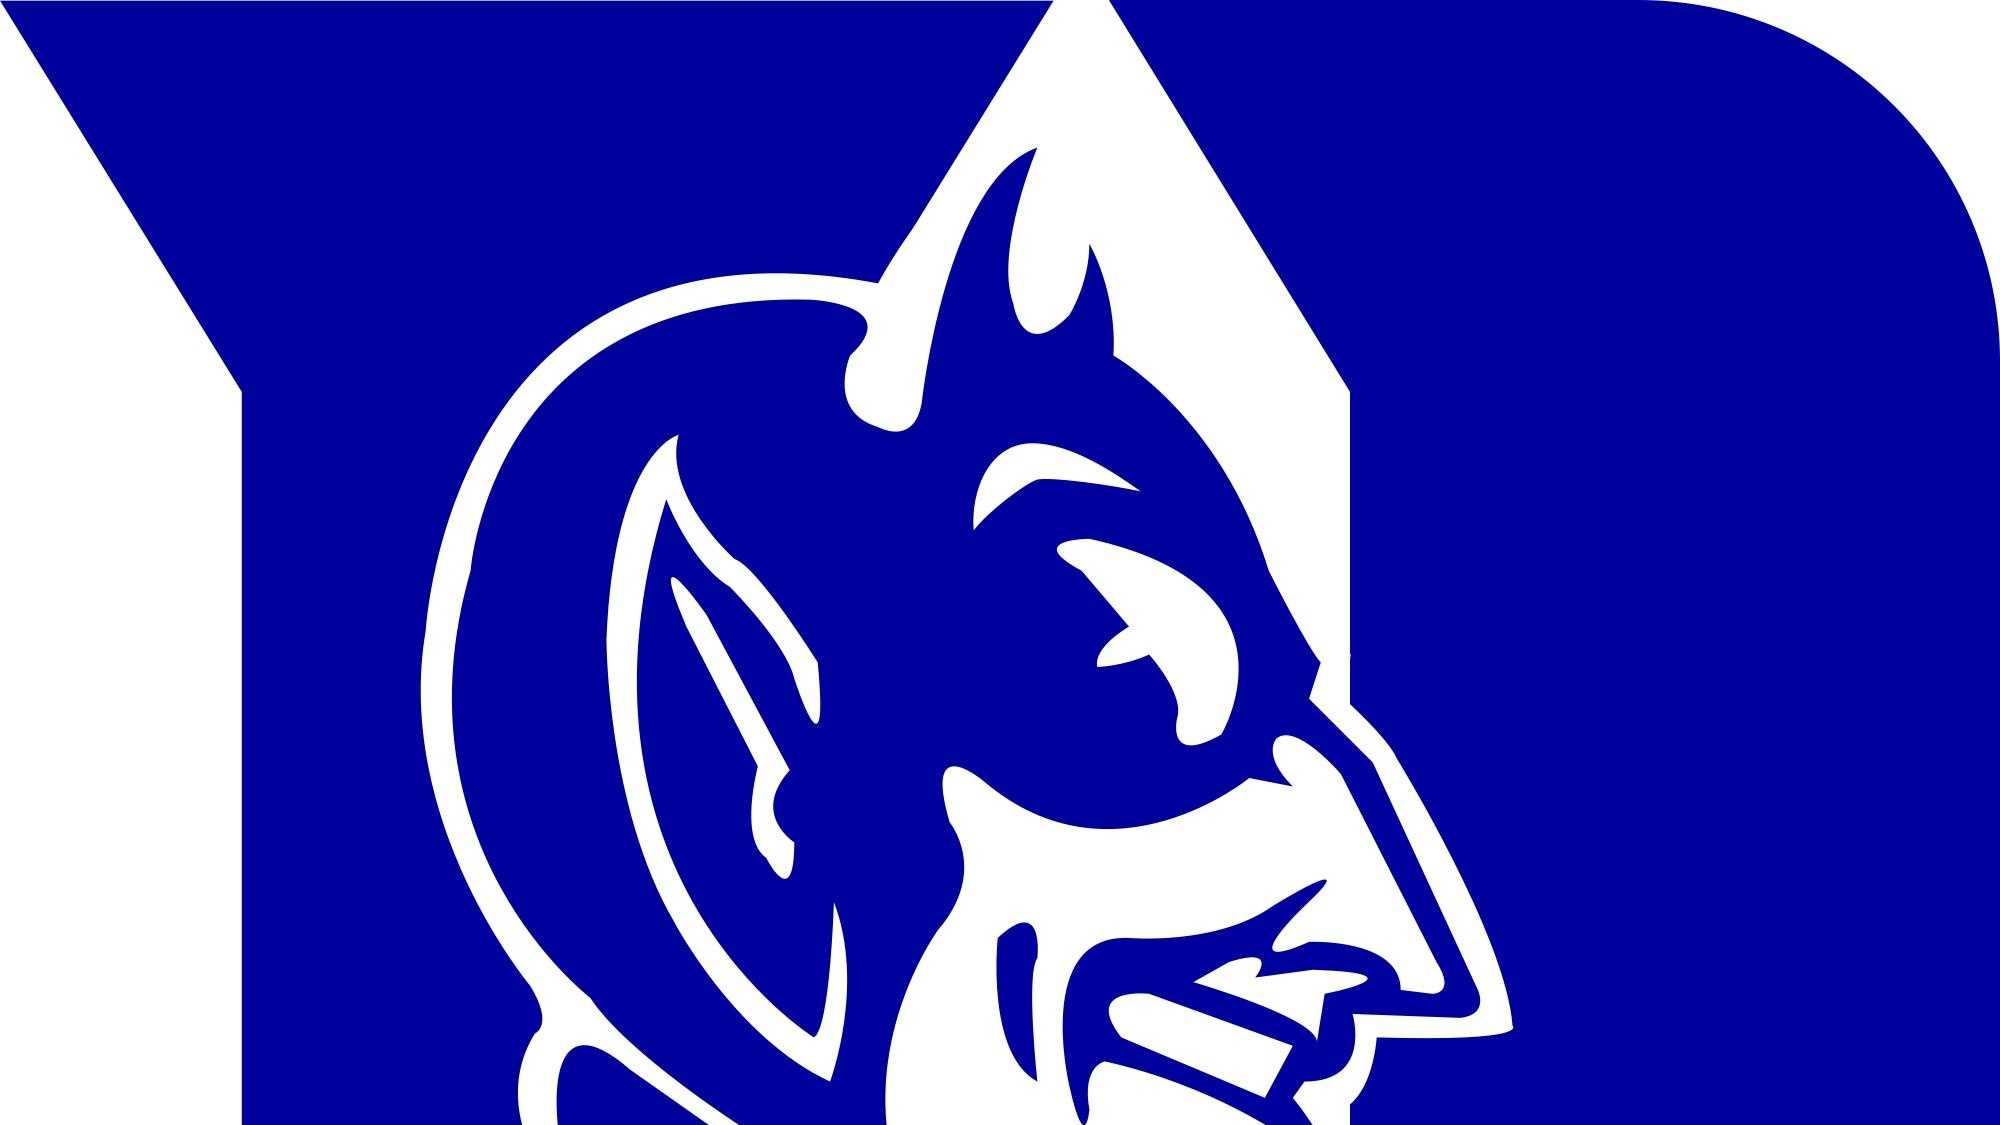 Duke Blue Devils logo - 30390116